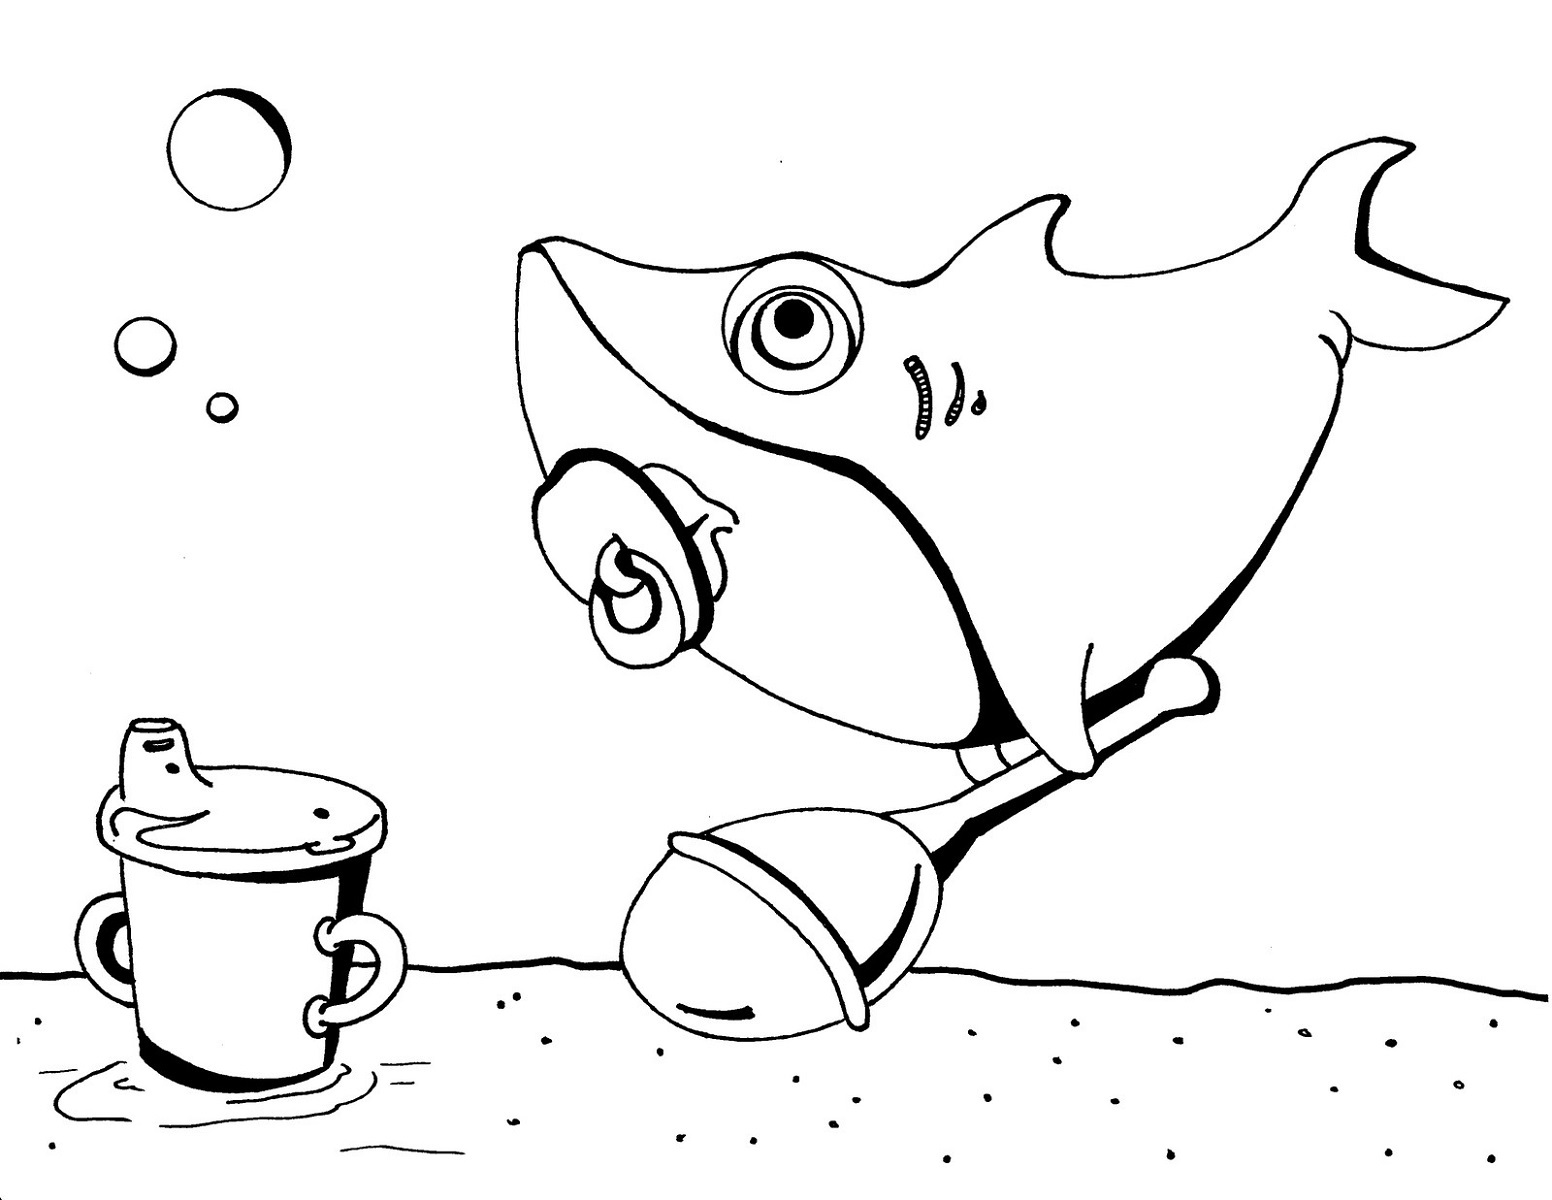 pictures of sharks to colour in free printable shark coloring pages for kids with images pictures in of to sharks colour